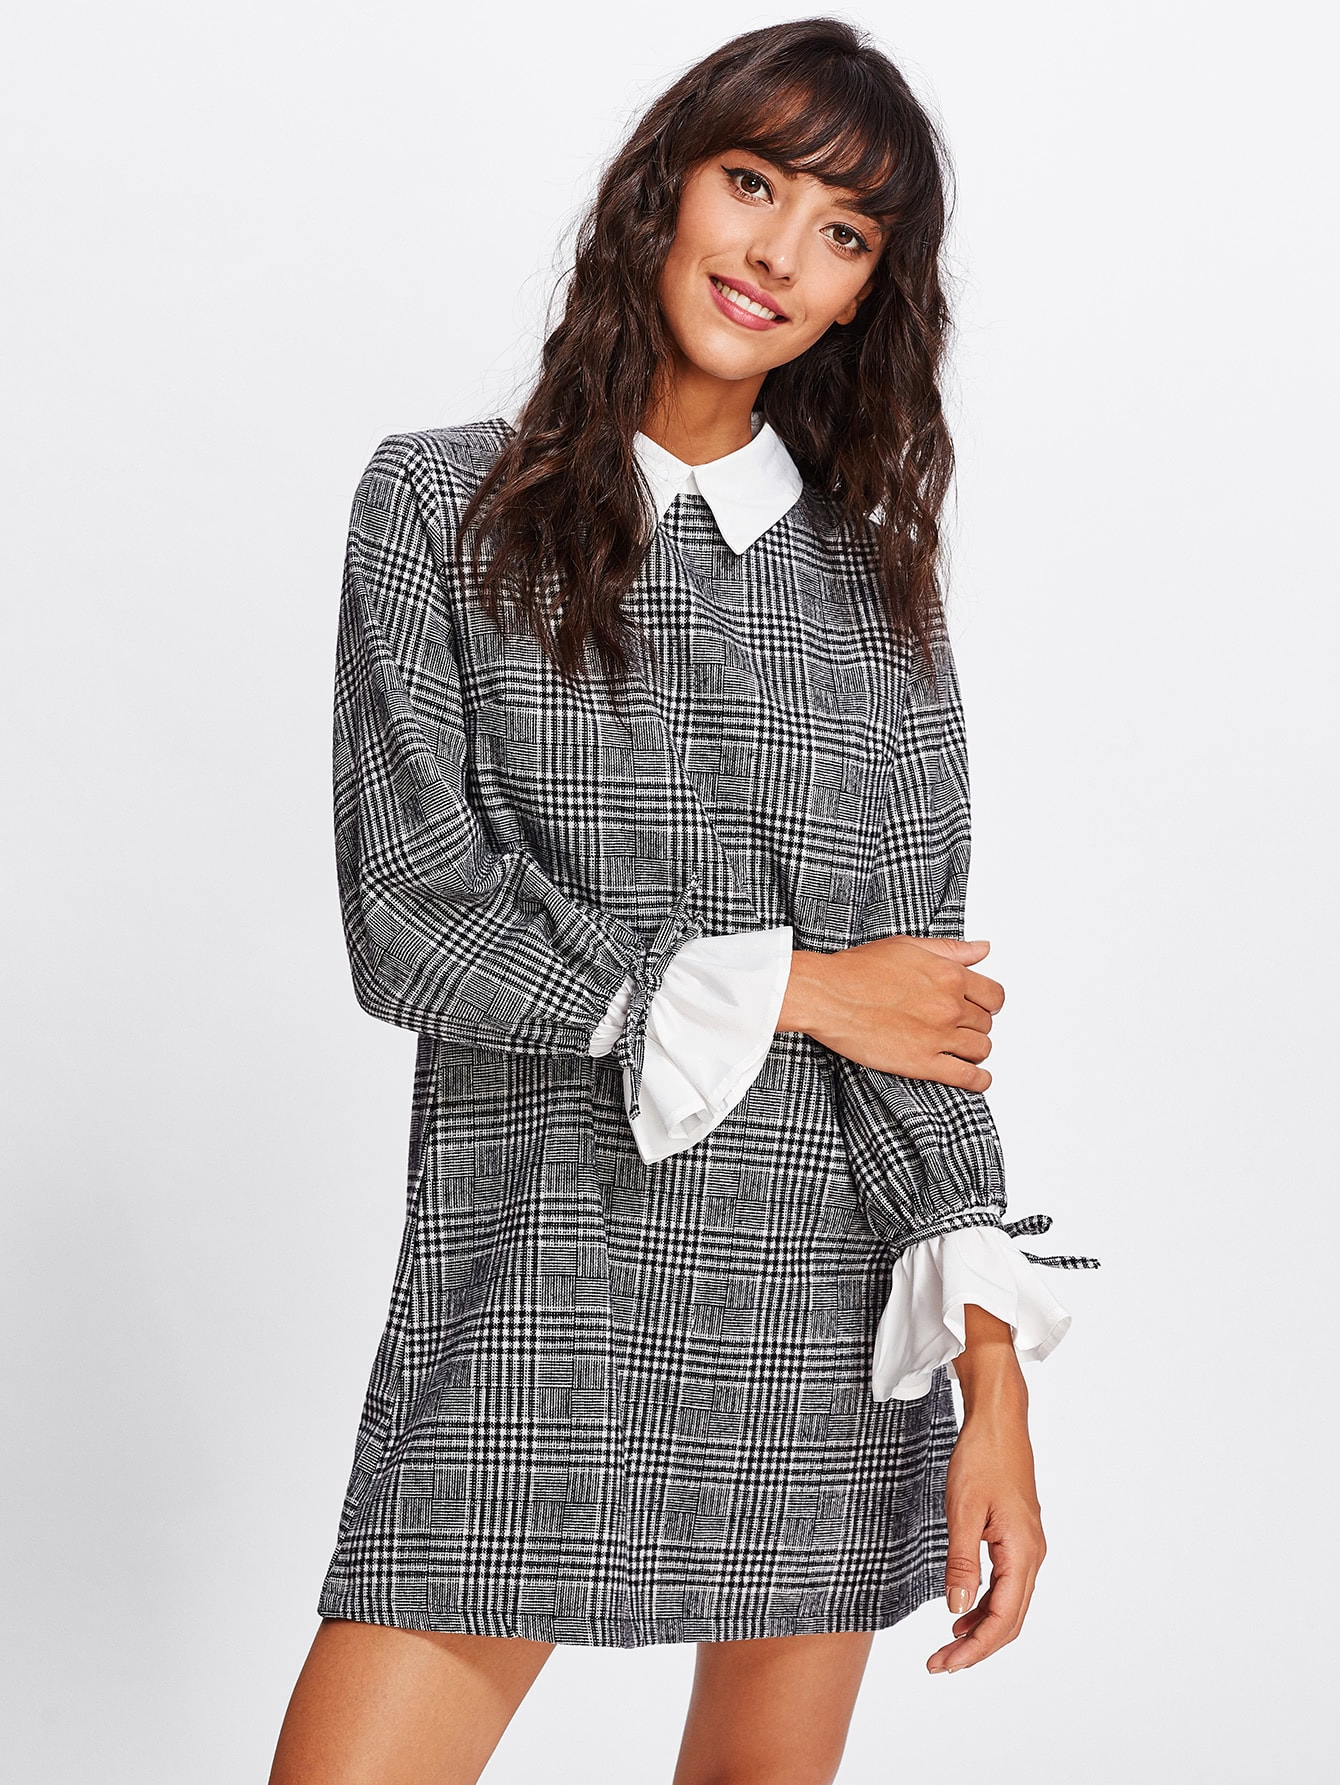 Contrast Tied Bell Cuff And Collar Plaid Dress jackie kay fiere